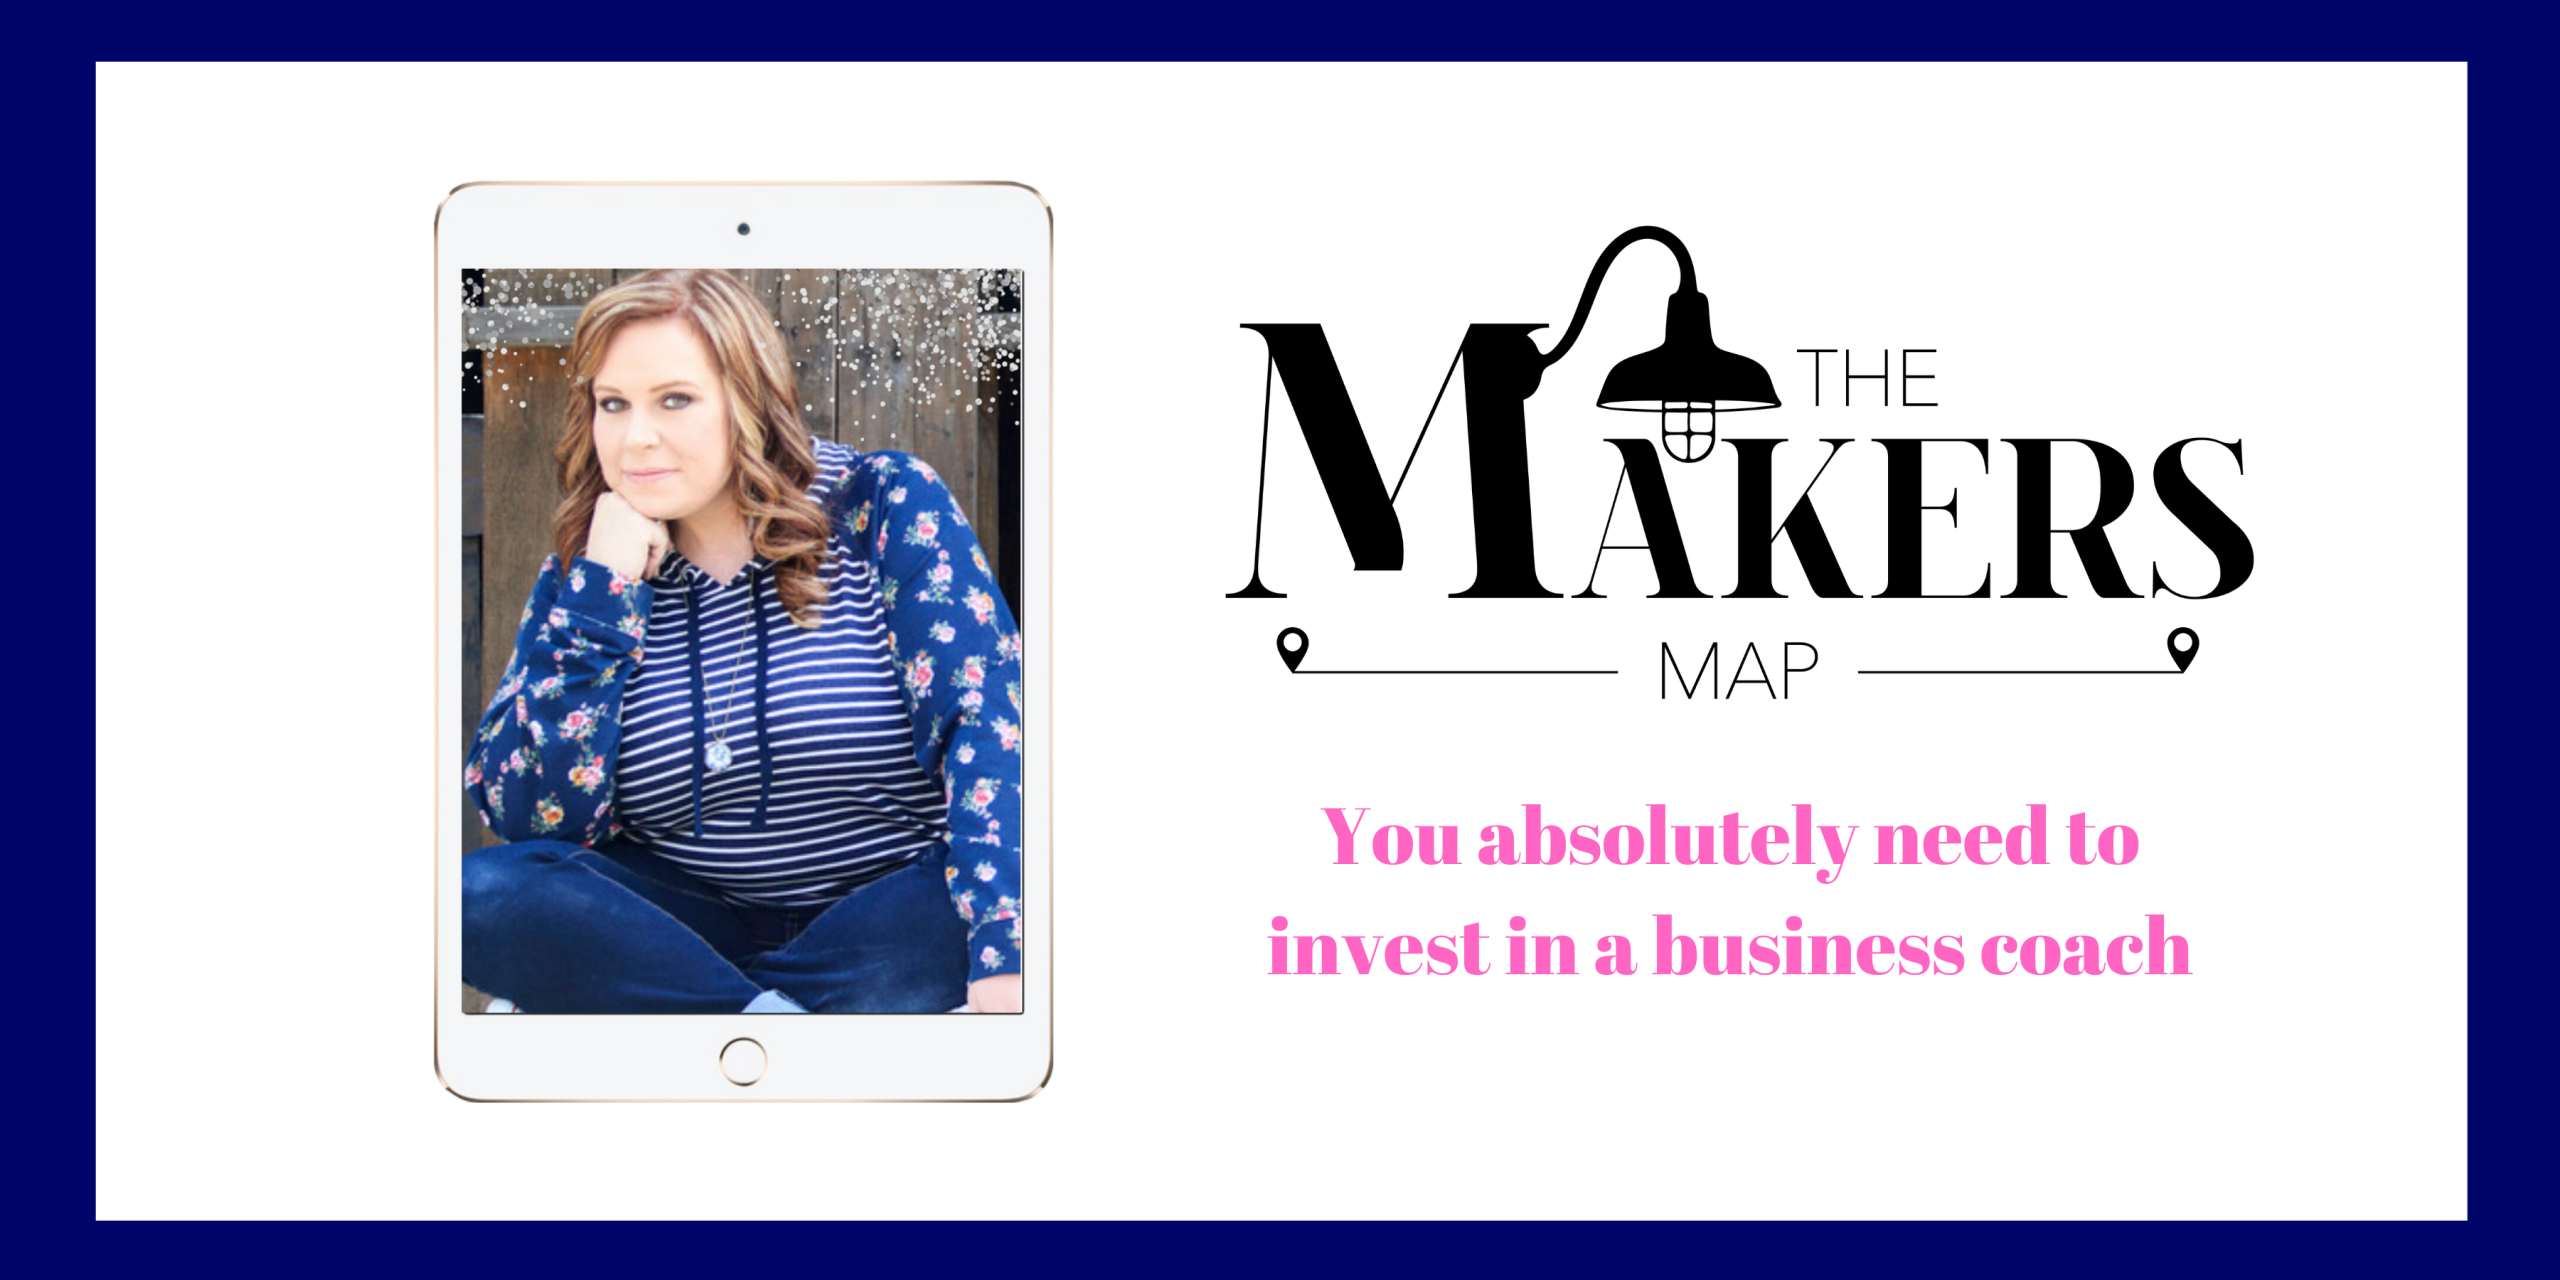 Friend, You Absolutely Need a Business Coach